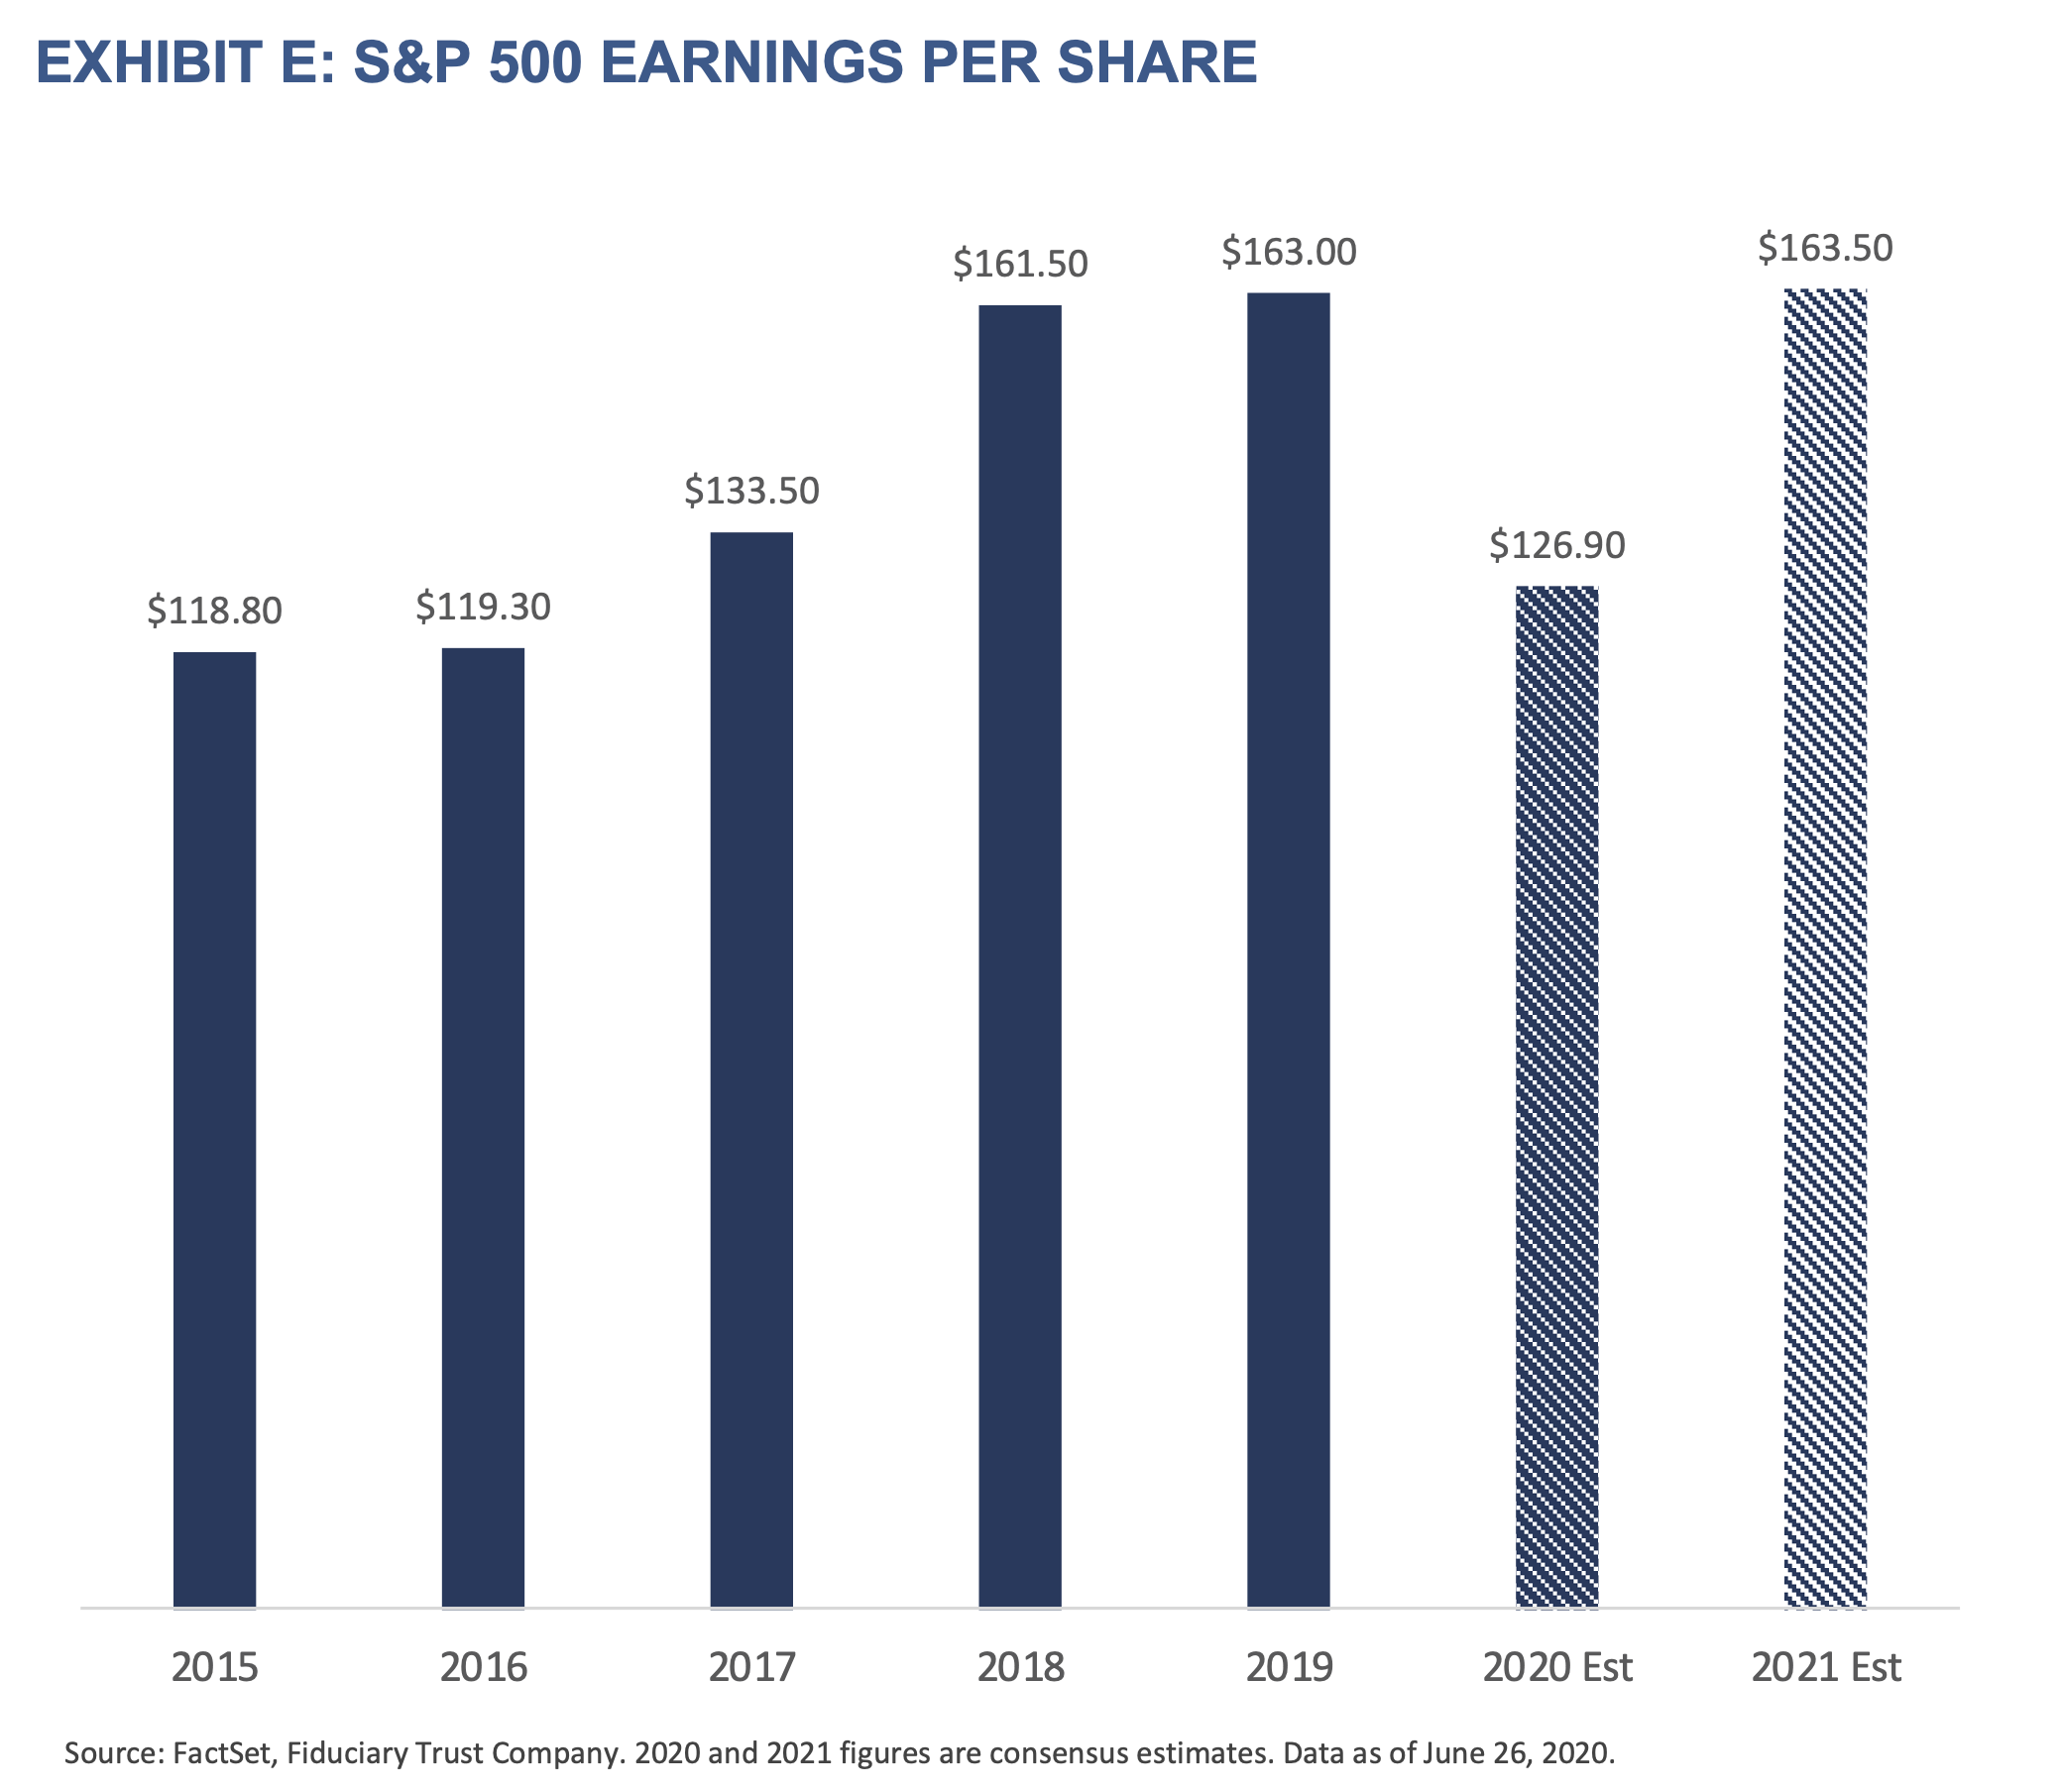 Exhibit E: S&P 500 Earnings Per Share